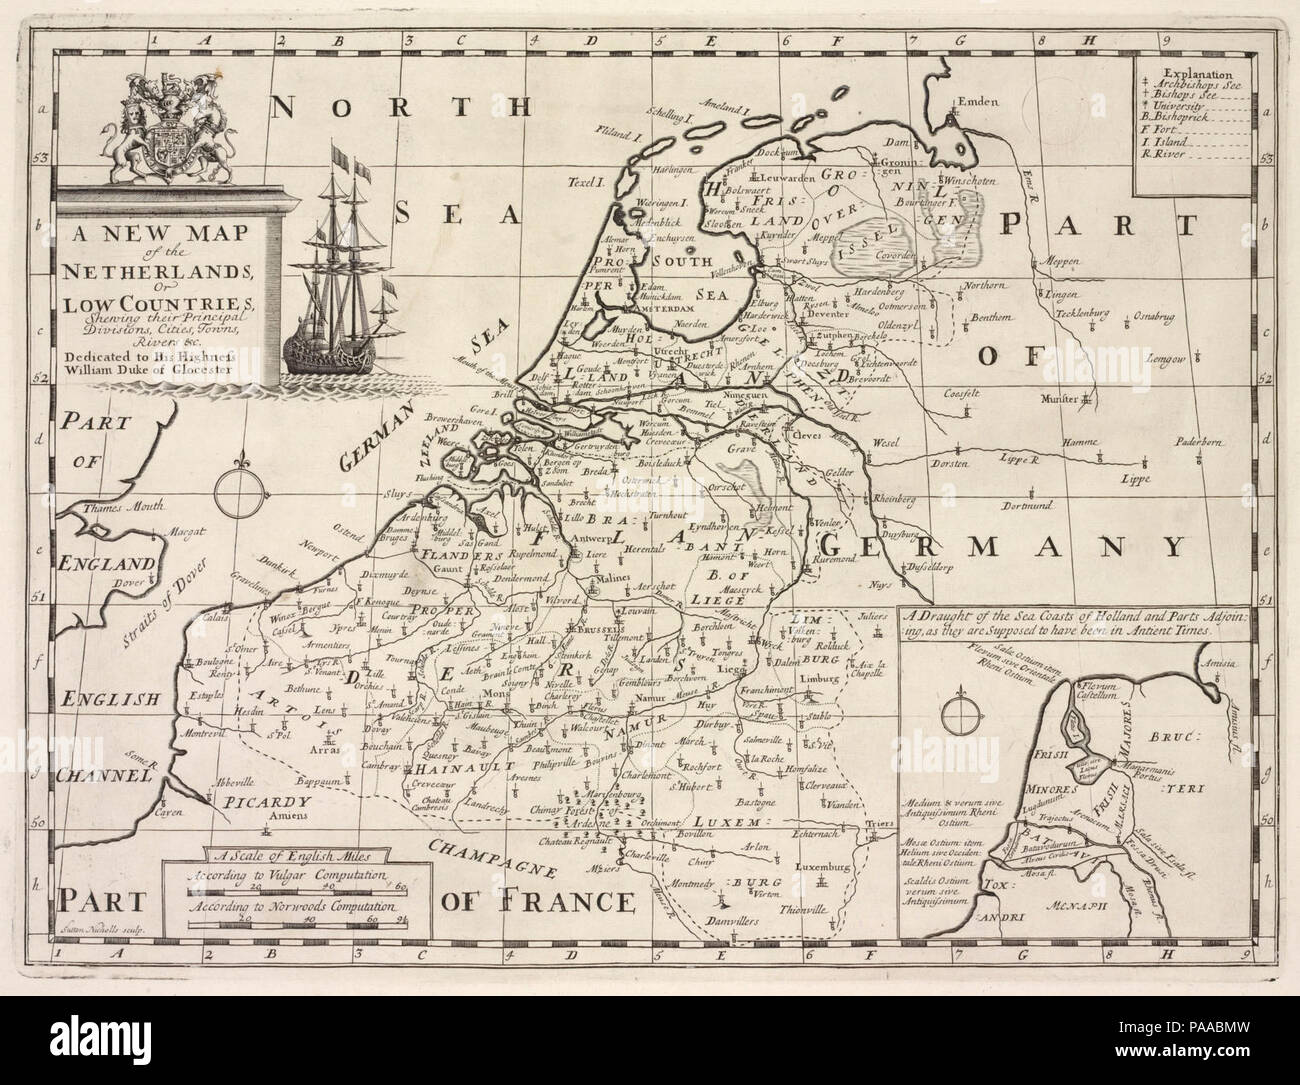 A new map of the Netherlands or Low Countries, shewing their ...